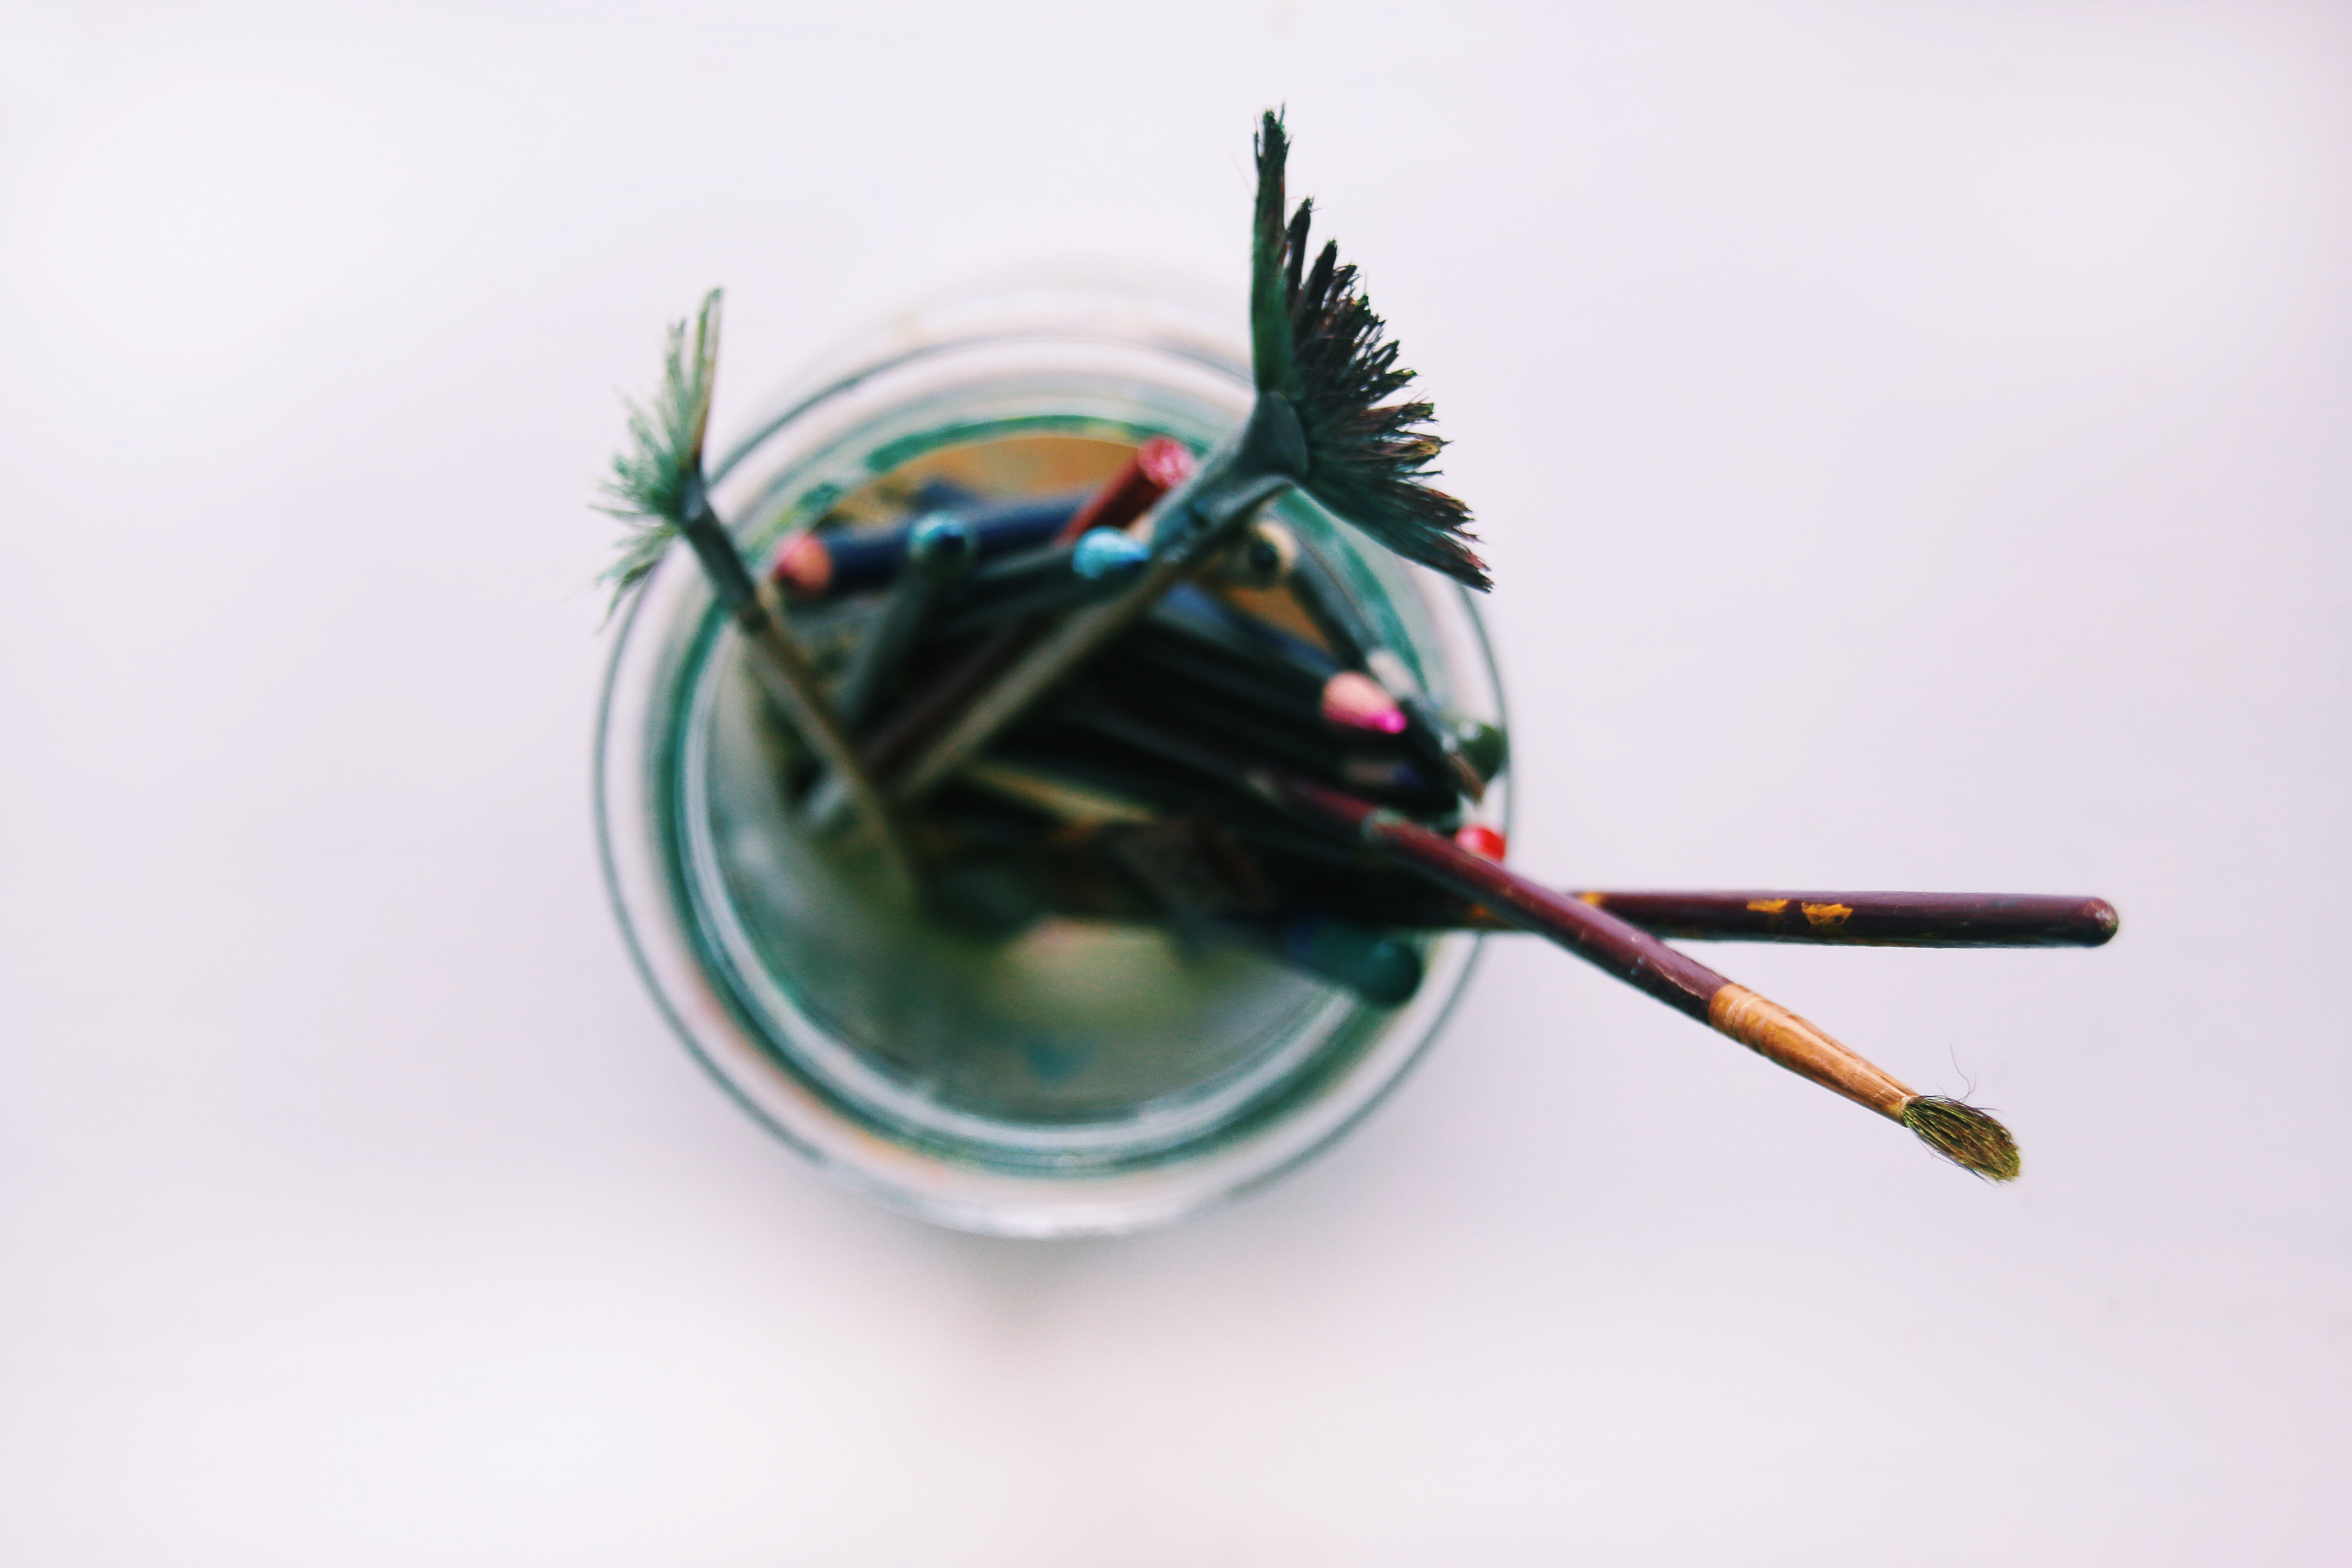 Overhead shot of dirty paint brushes in a glass on a counter